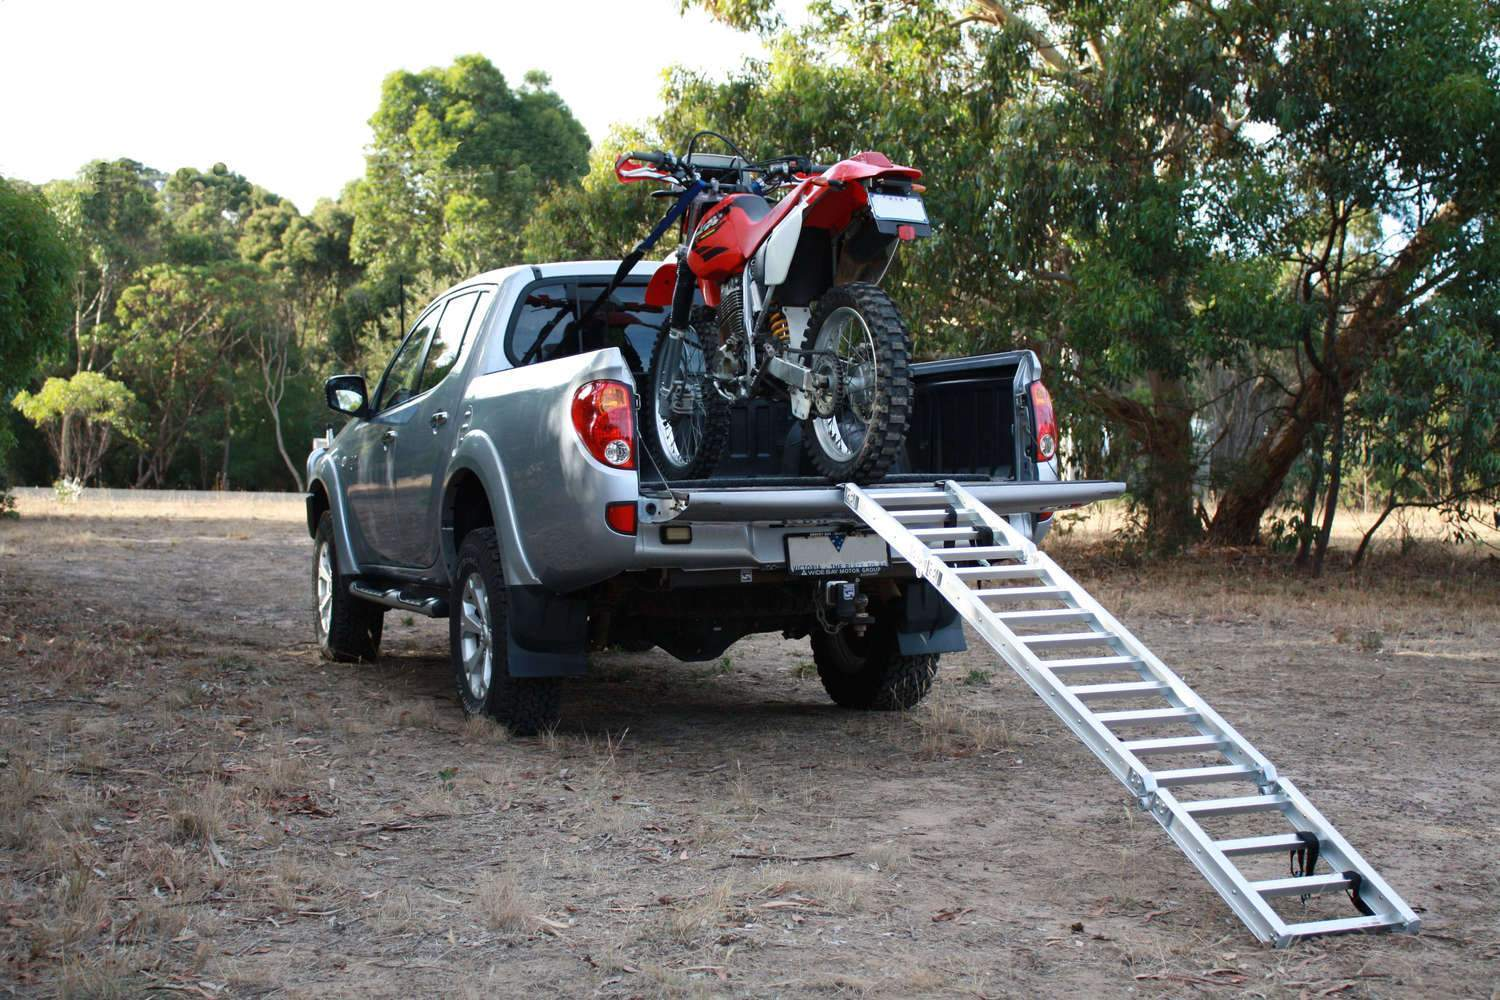 motorcycle loaded on a ute with ramp